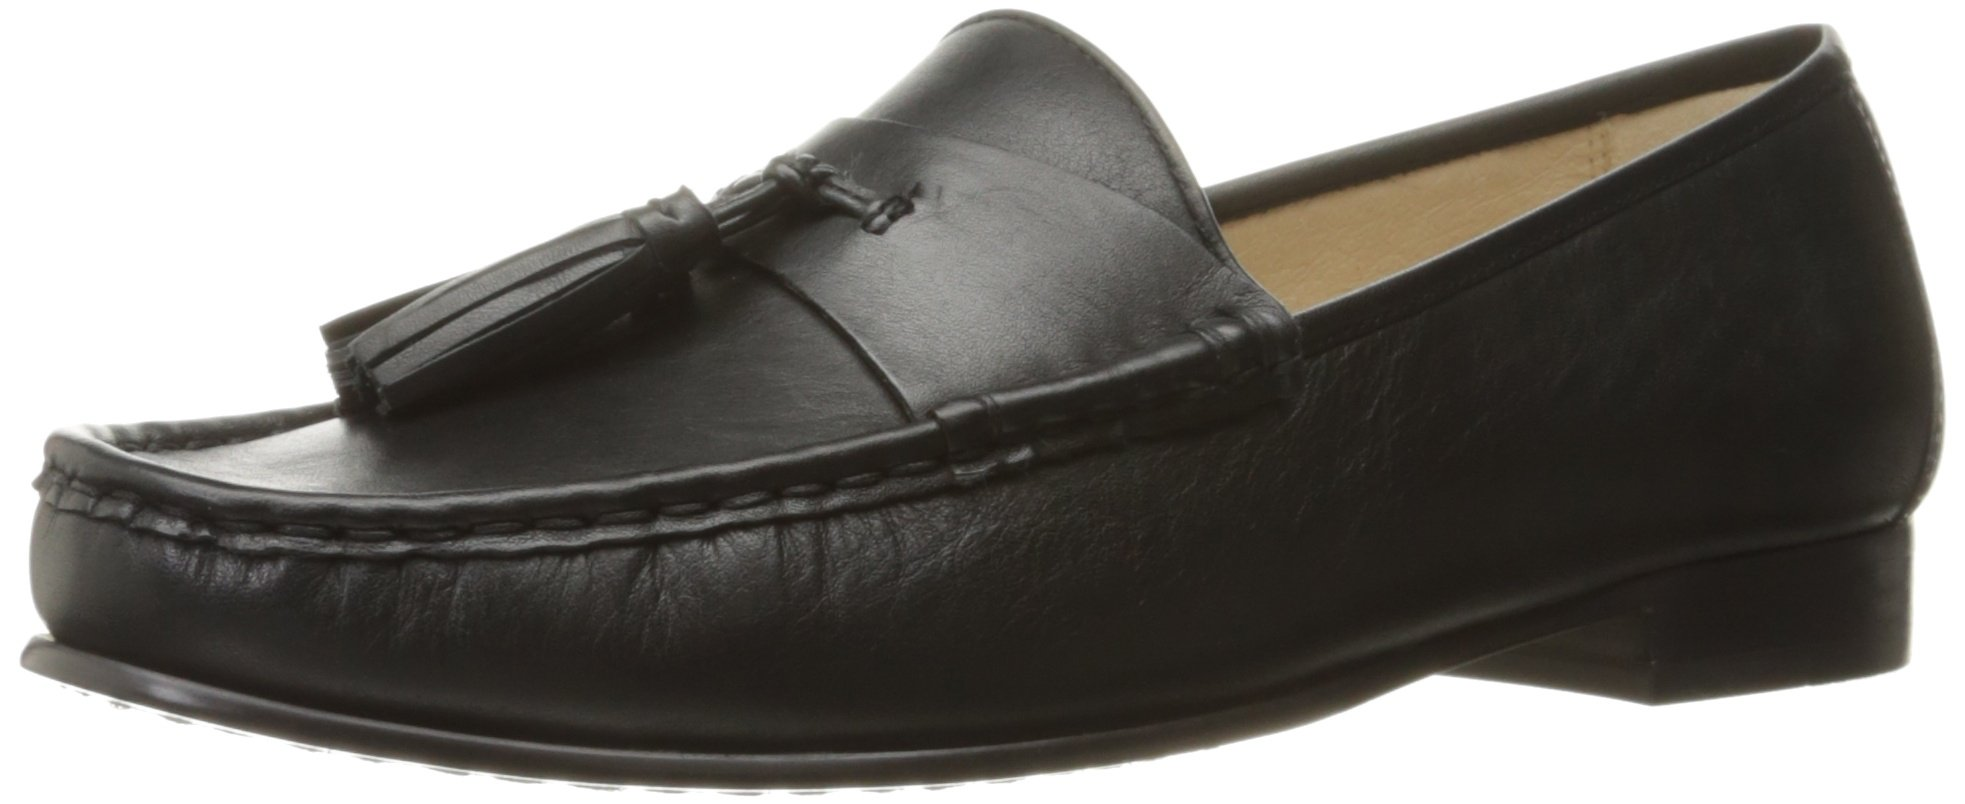 Sam Edelman Women's Therese Slip-On Loafer, Black, 7 M US by Sam Edelman (Image #1)